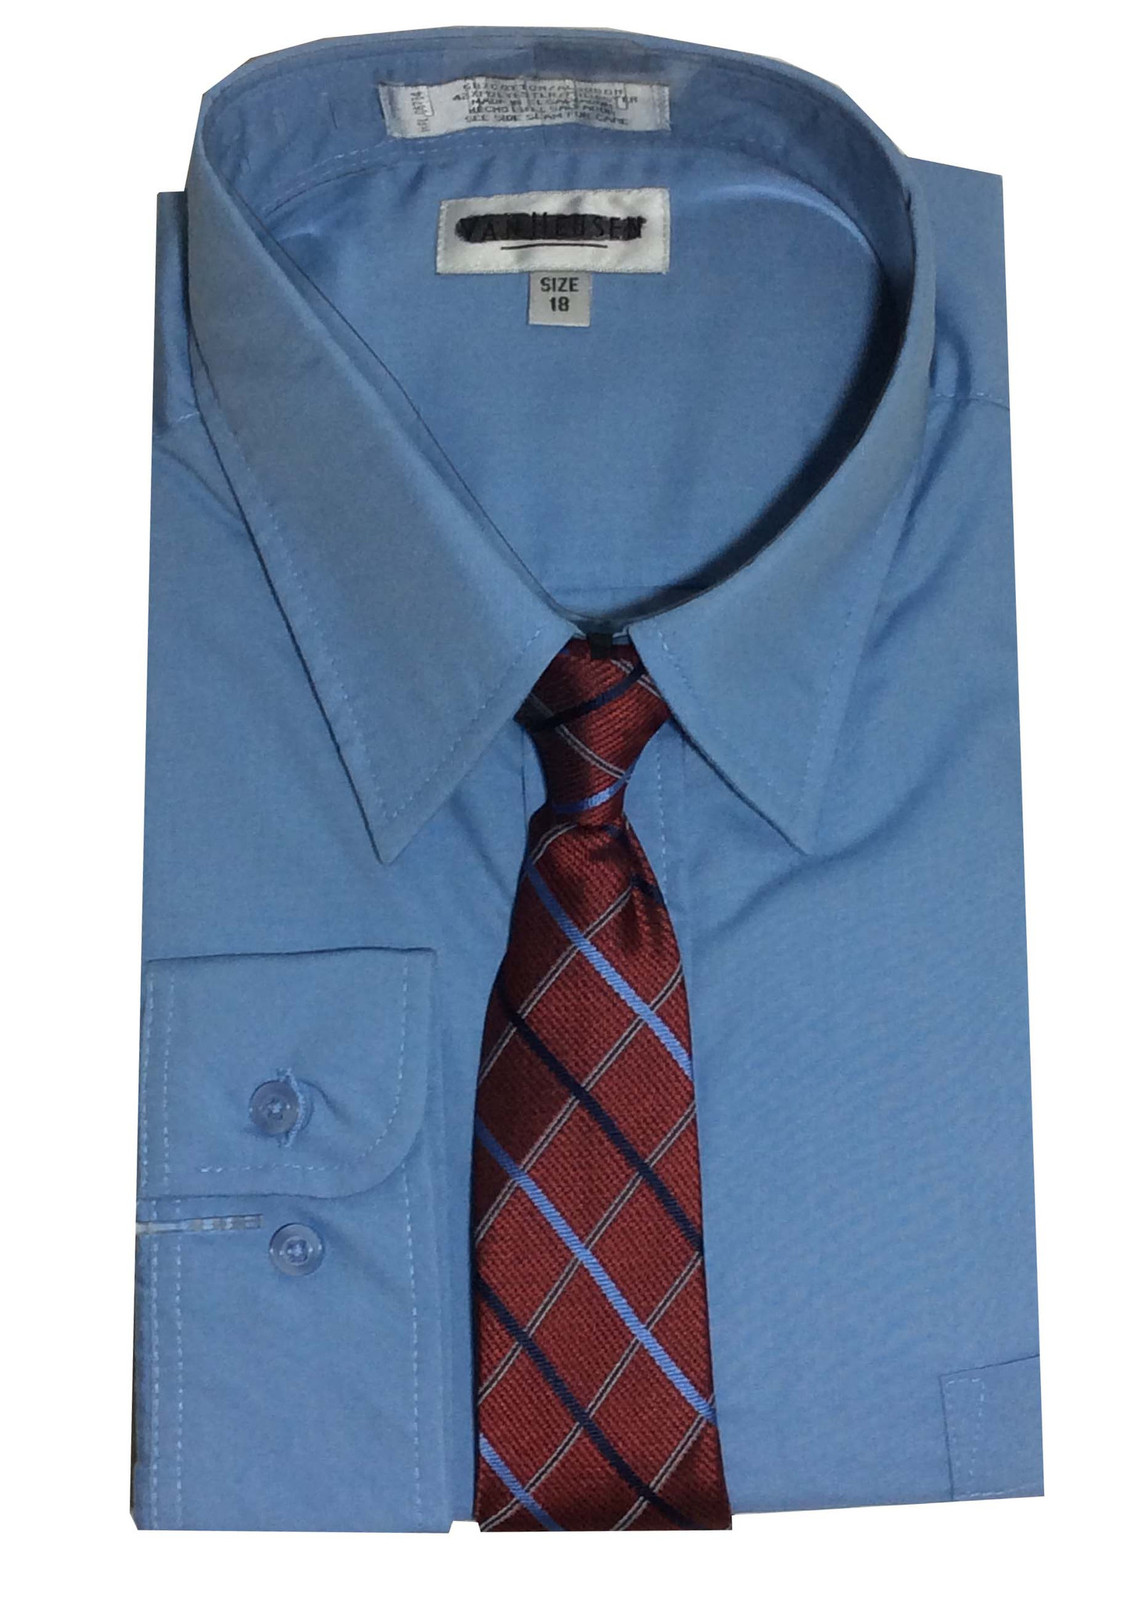 Van Heusen Dress Dhirt and Tie Set - $10.99